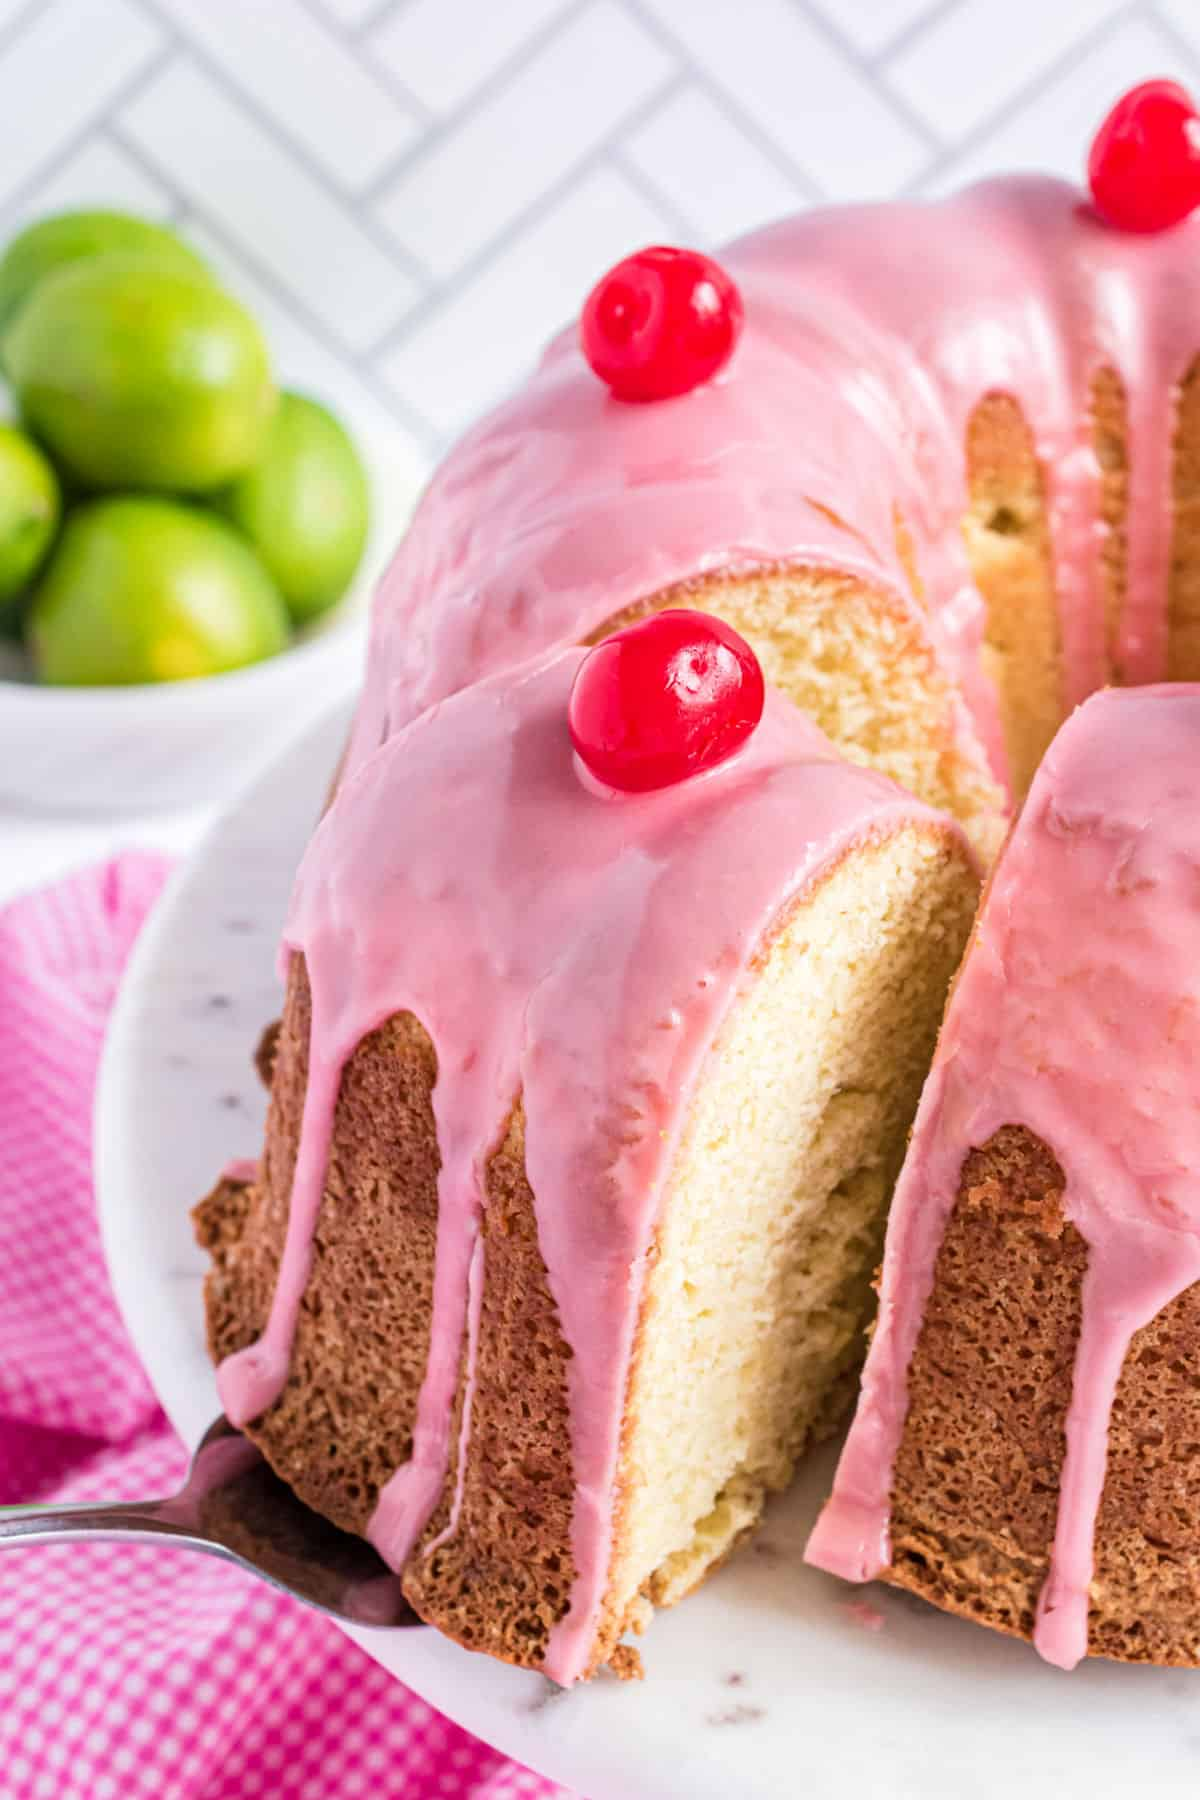 Slice of cherry pound cake being removed from plate.